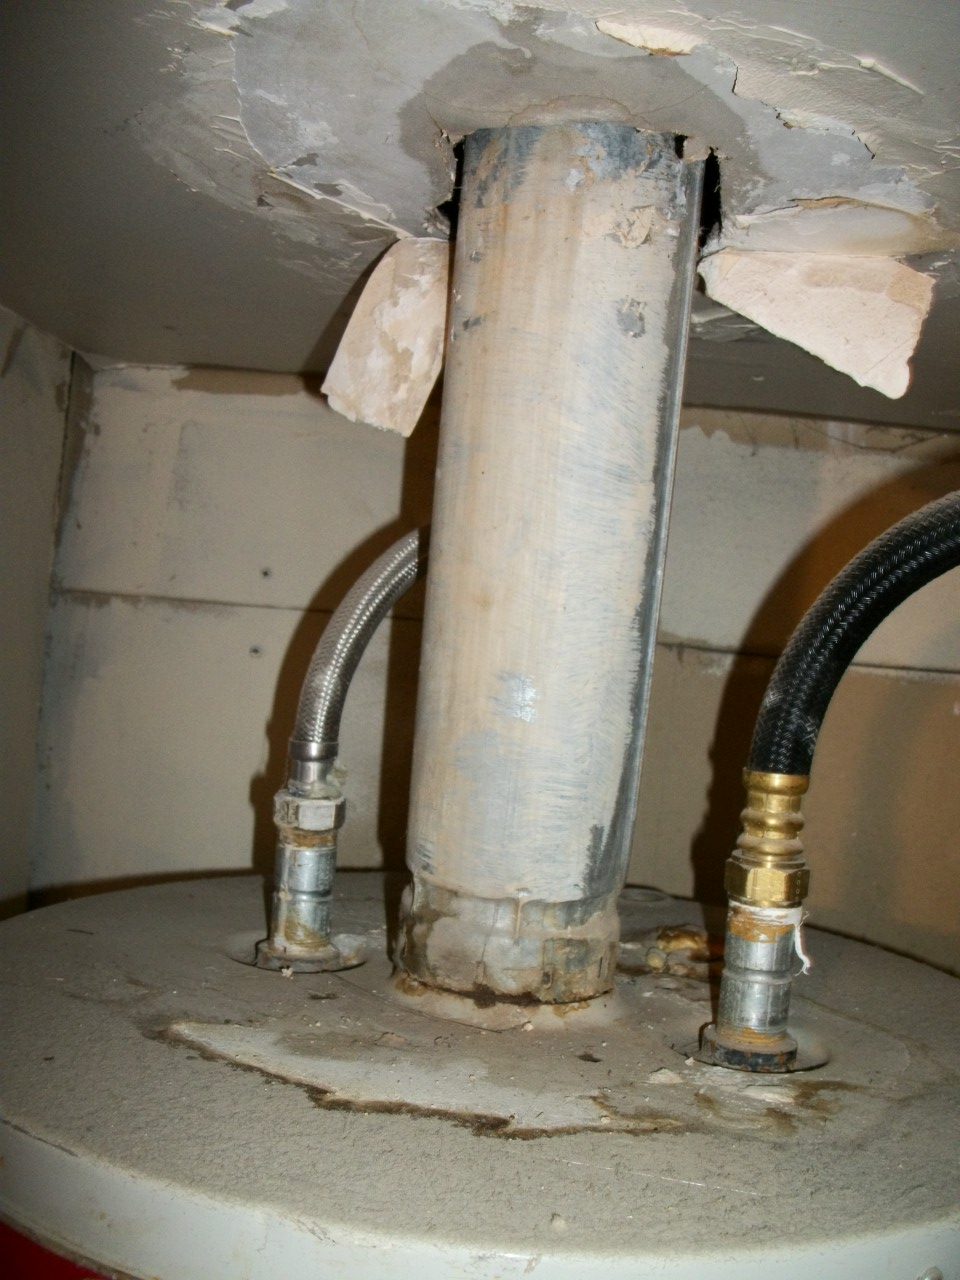 water heater flue should not be attached directly to the water heater. Also, the flue is in contact with the drywall above